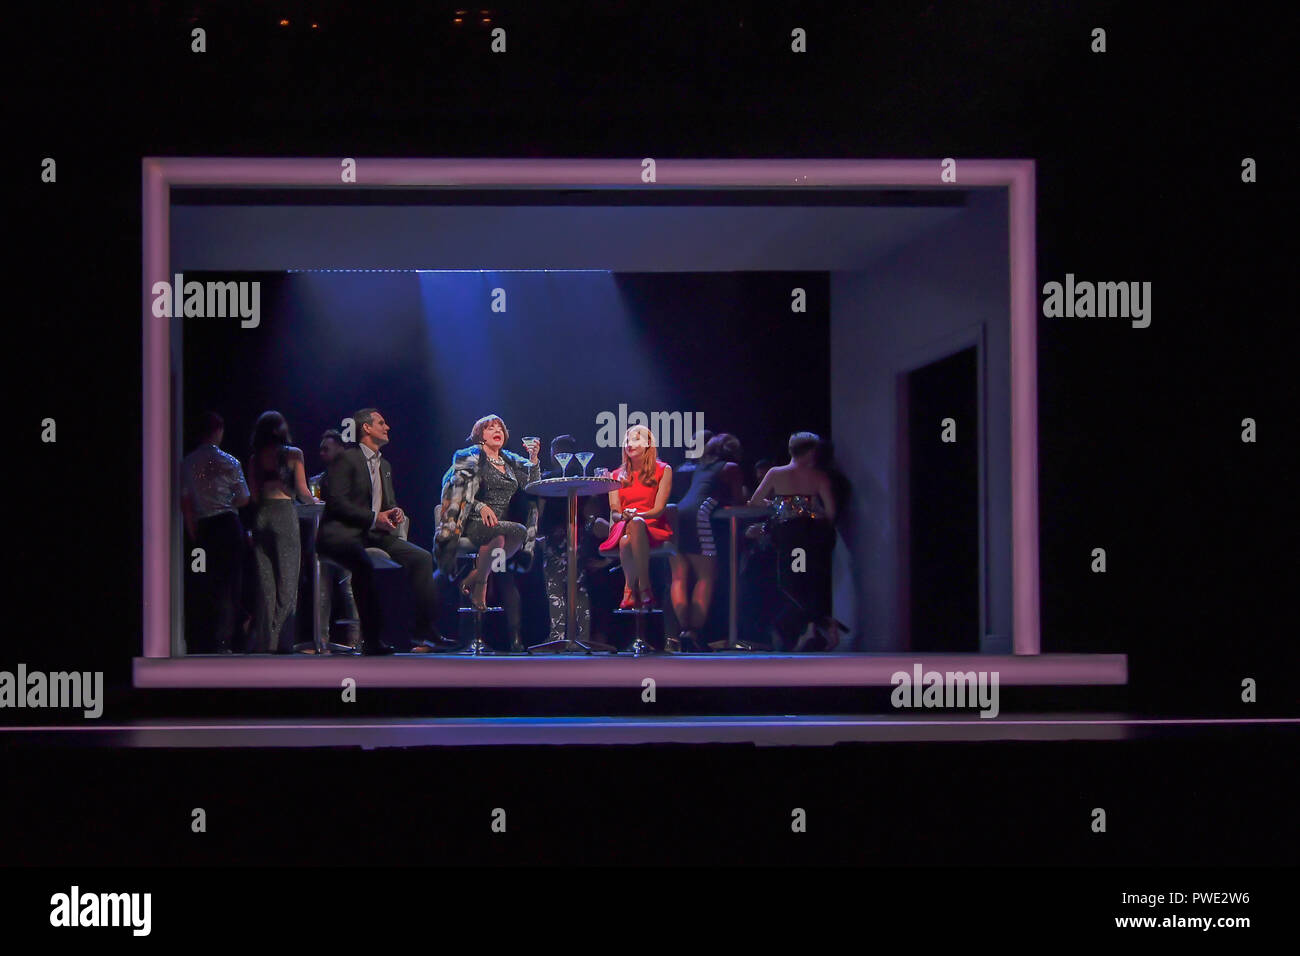 London, UK. 15th Oct 2018. Photocall: Company at Gielgud Theatre, London, UK. 15 October 2018. Credit: Picture Capital/Alamy Live News - Stock Image